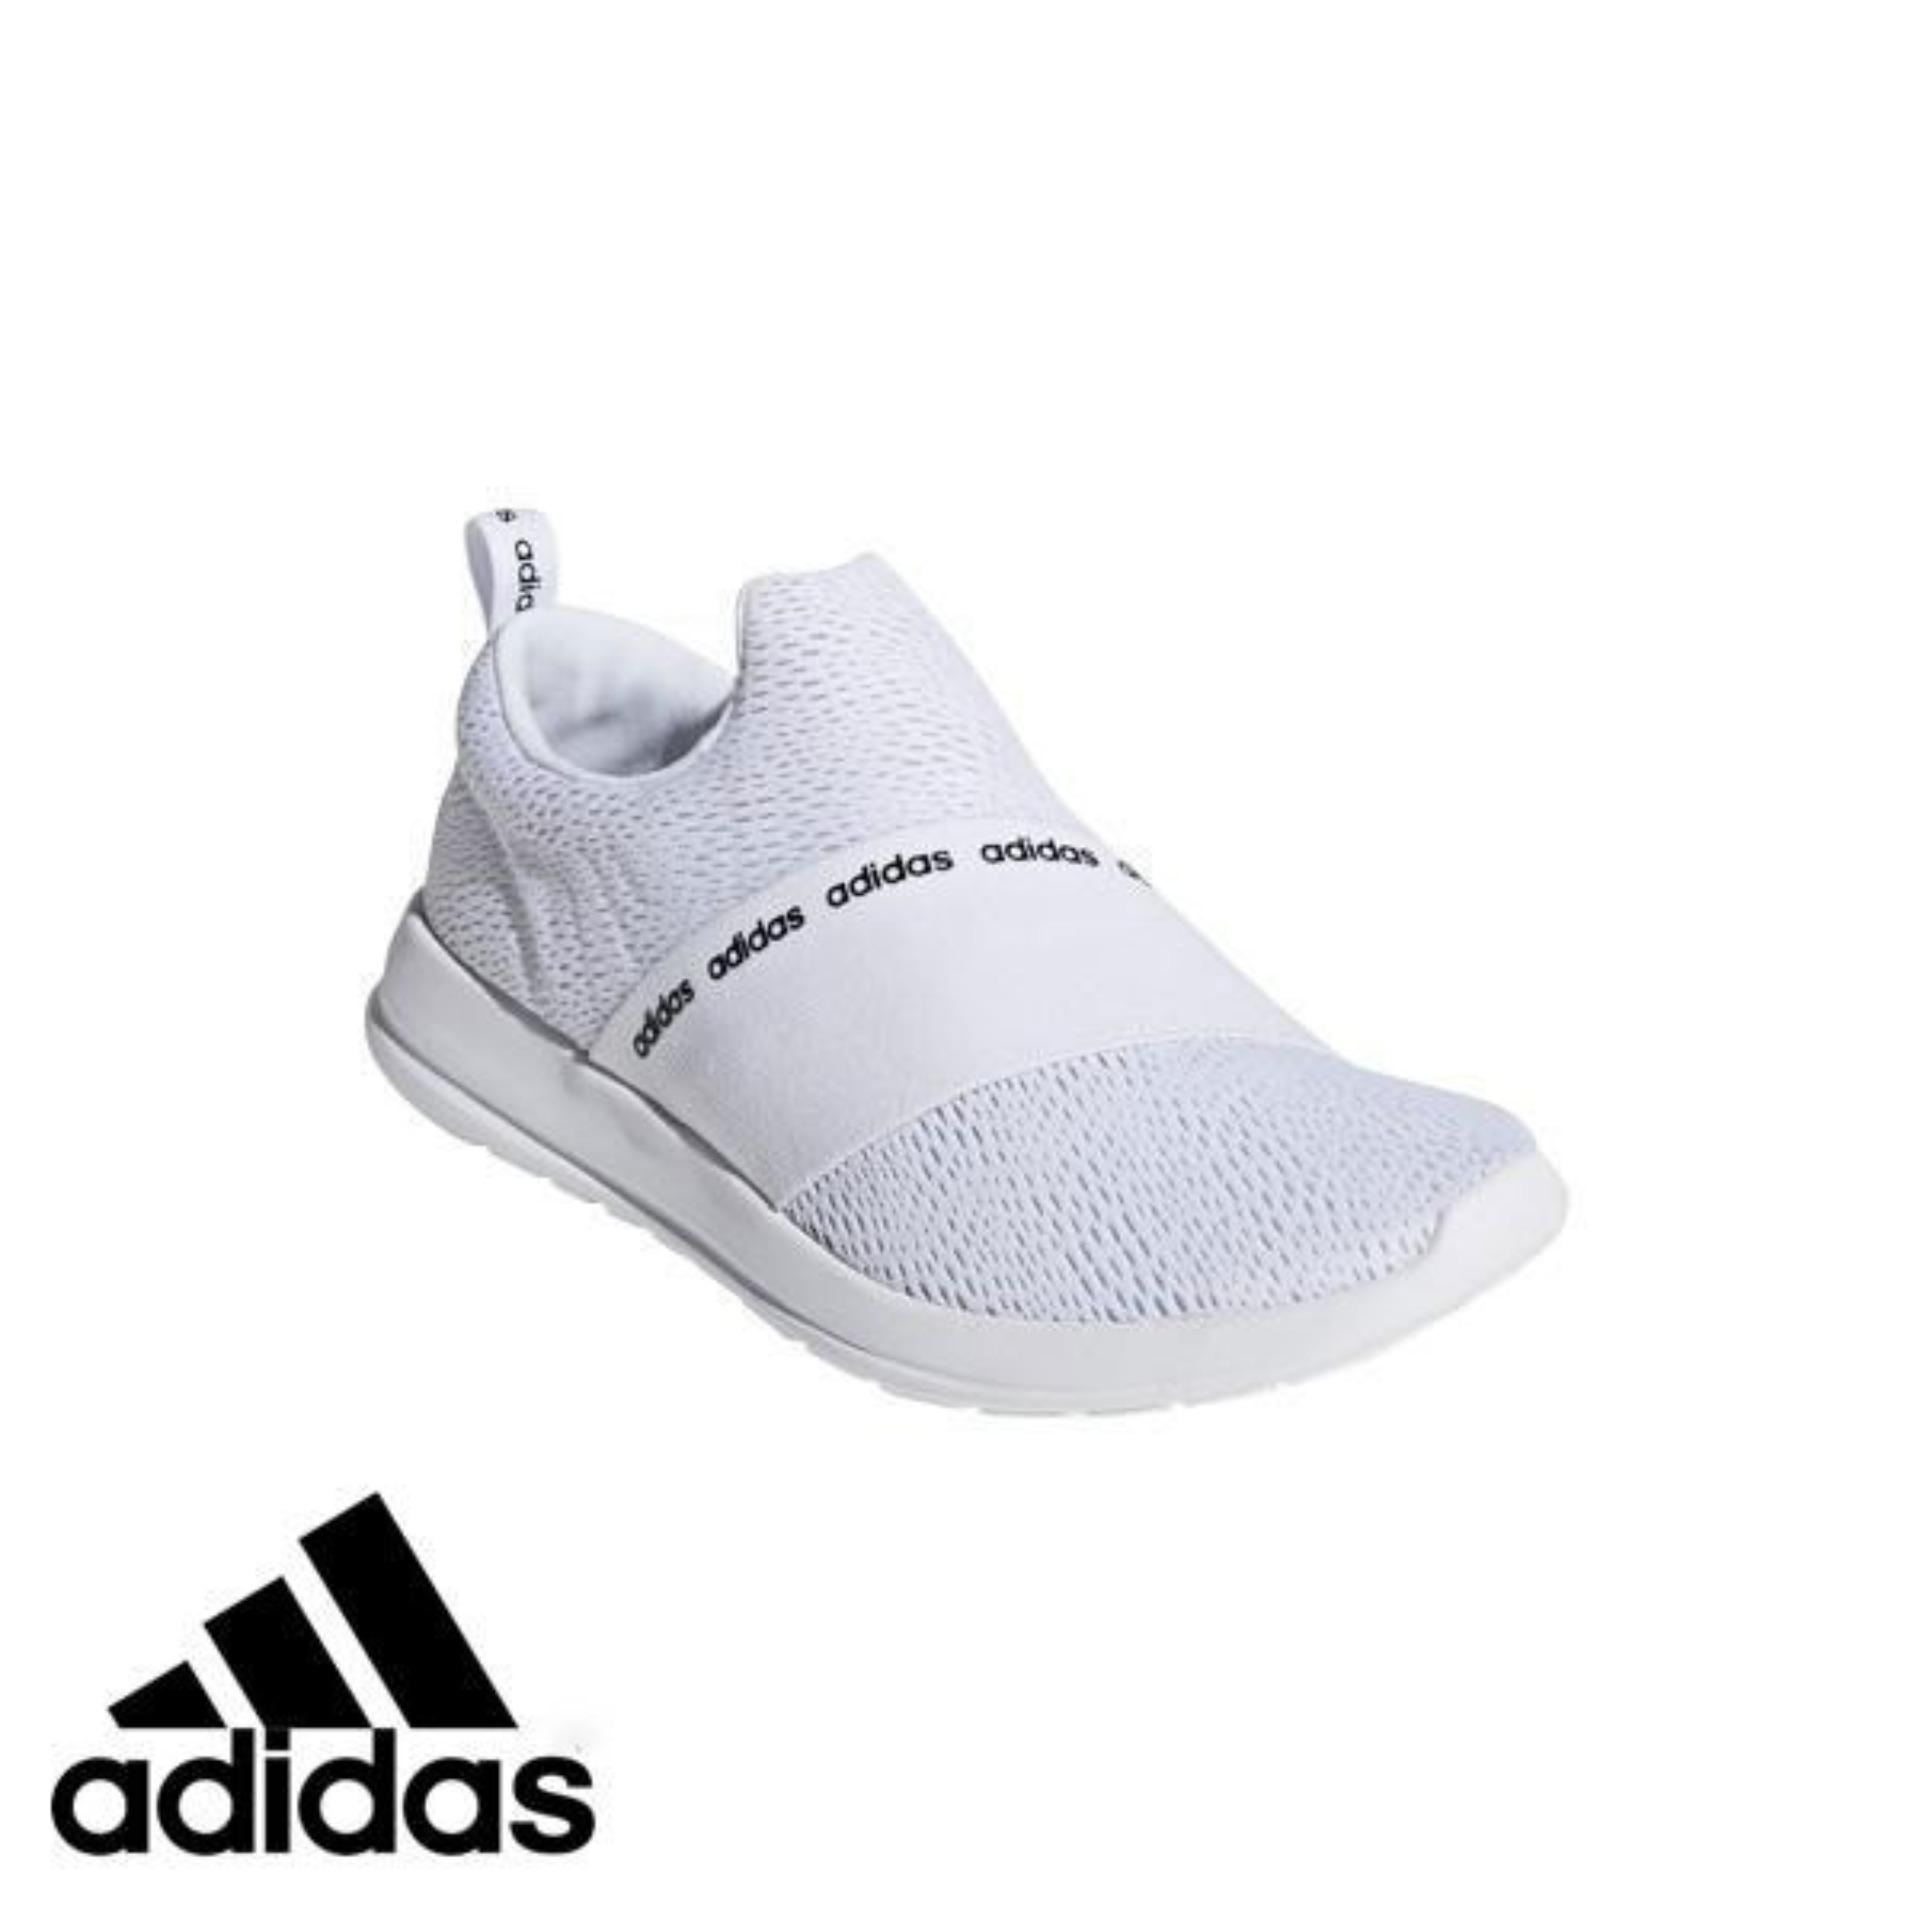 a13f249fad3 Adidas Sports Shoes Philippines - Adidas Sports Clothing for sale ...